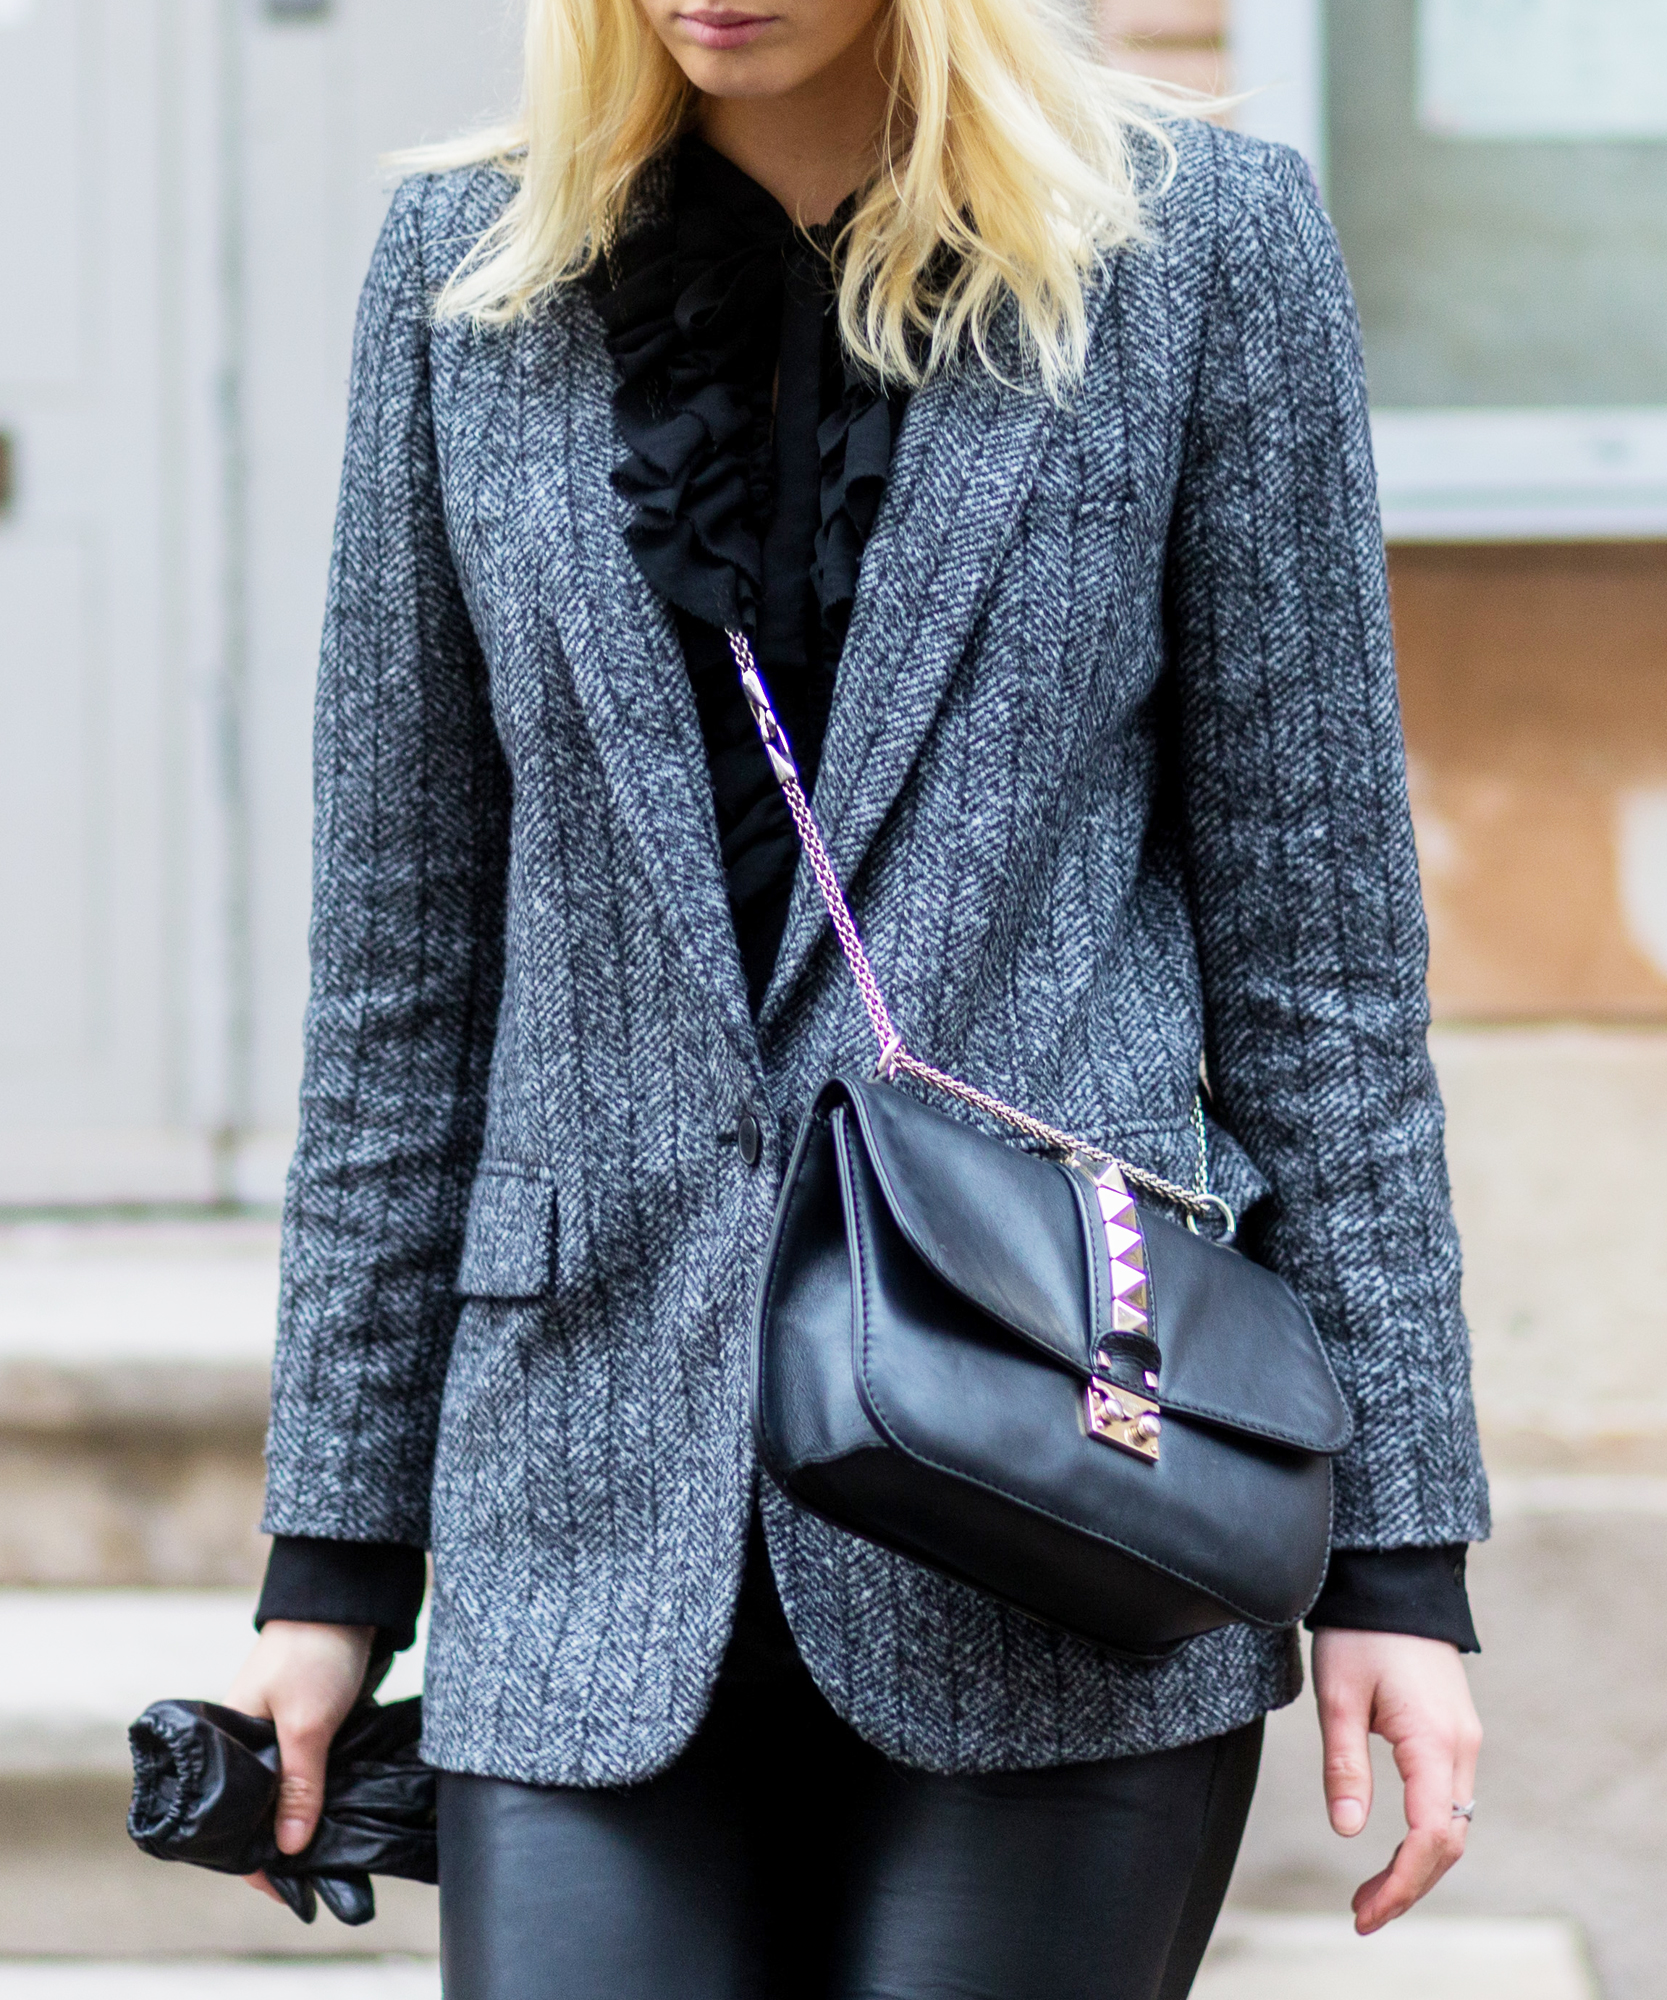 How to Wear a Blazer Like a Street Style Star